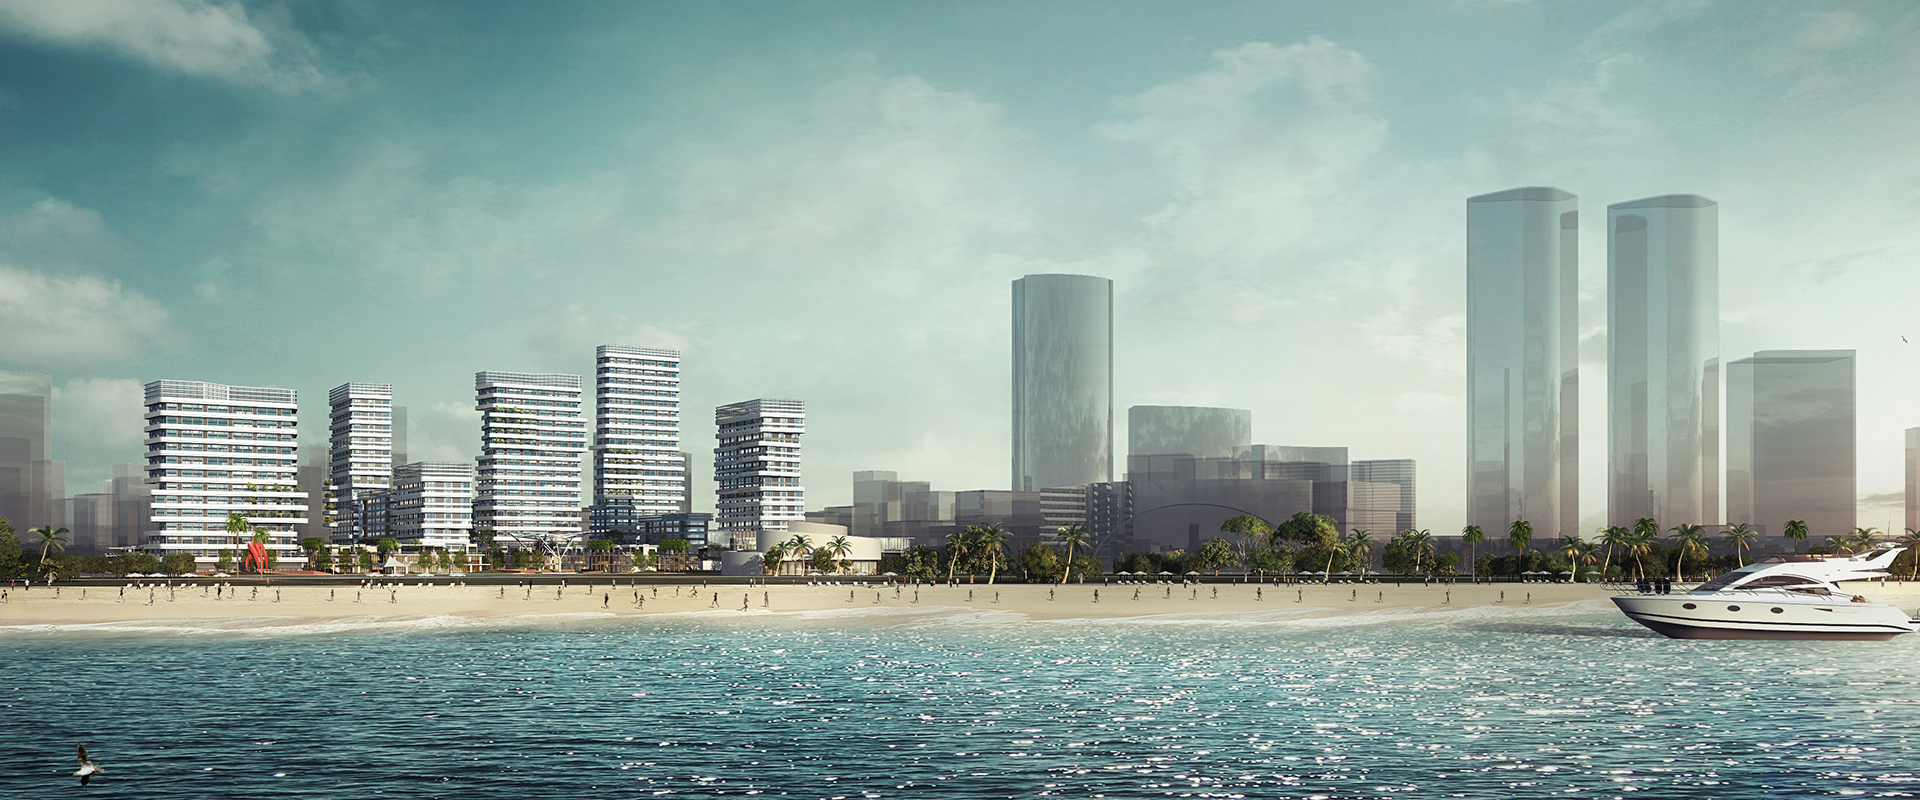 Qingdao Westcoast Bay Project